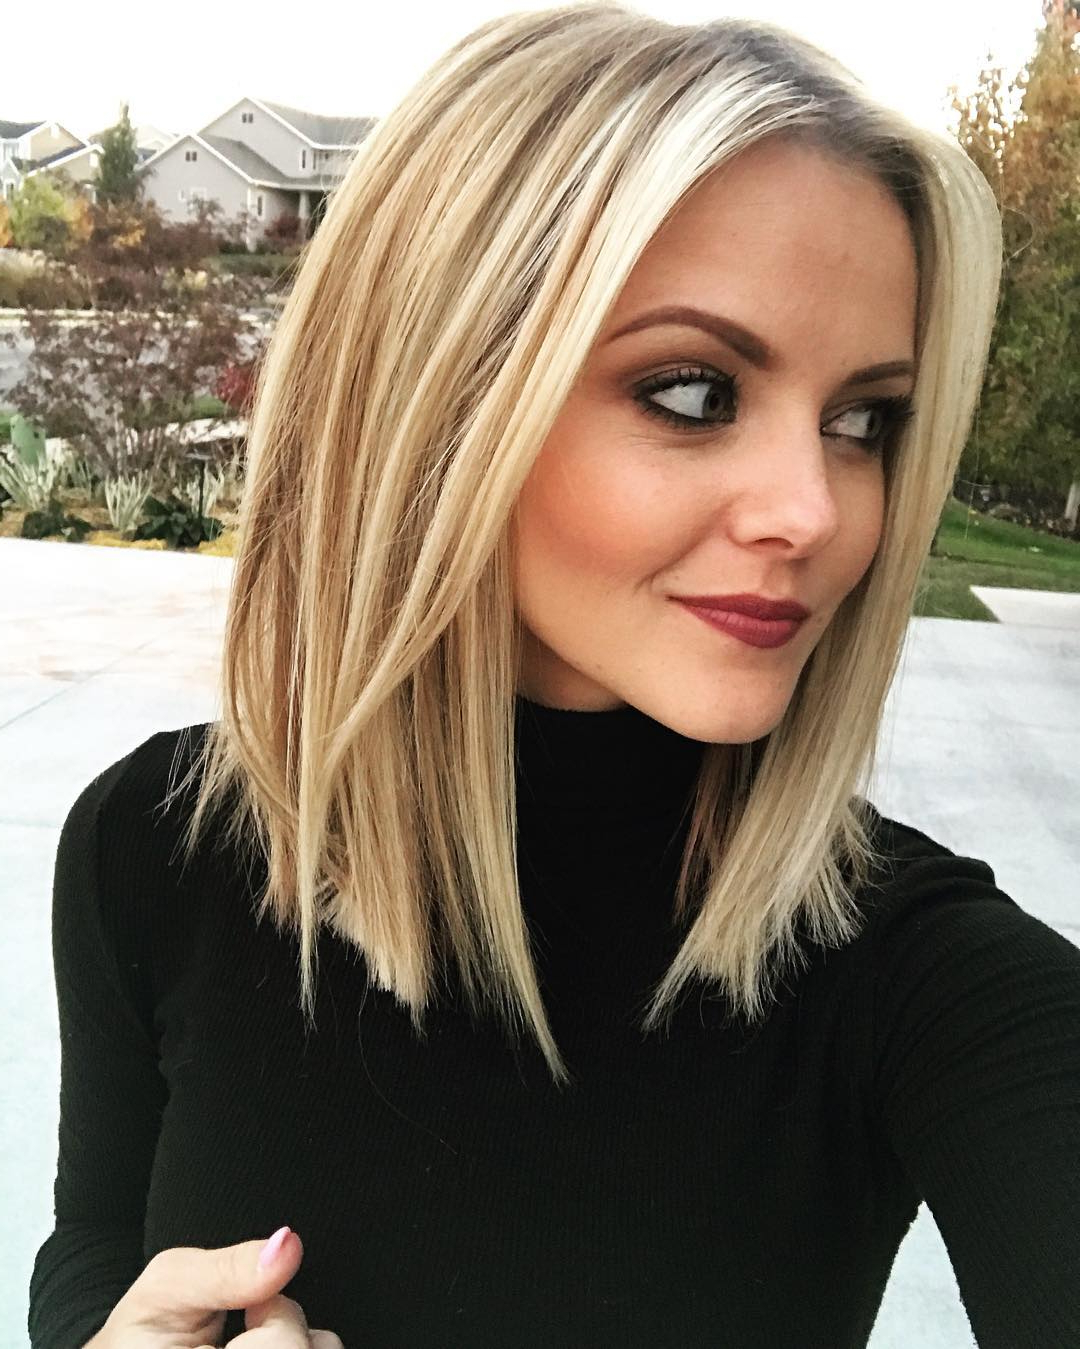 10 Stylish & Sweet Lob Haircut Ideas, Shoulder Length Inside Modern And Stylish Blonde Bob Haircuts (Gallery 14 of 20)